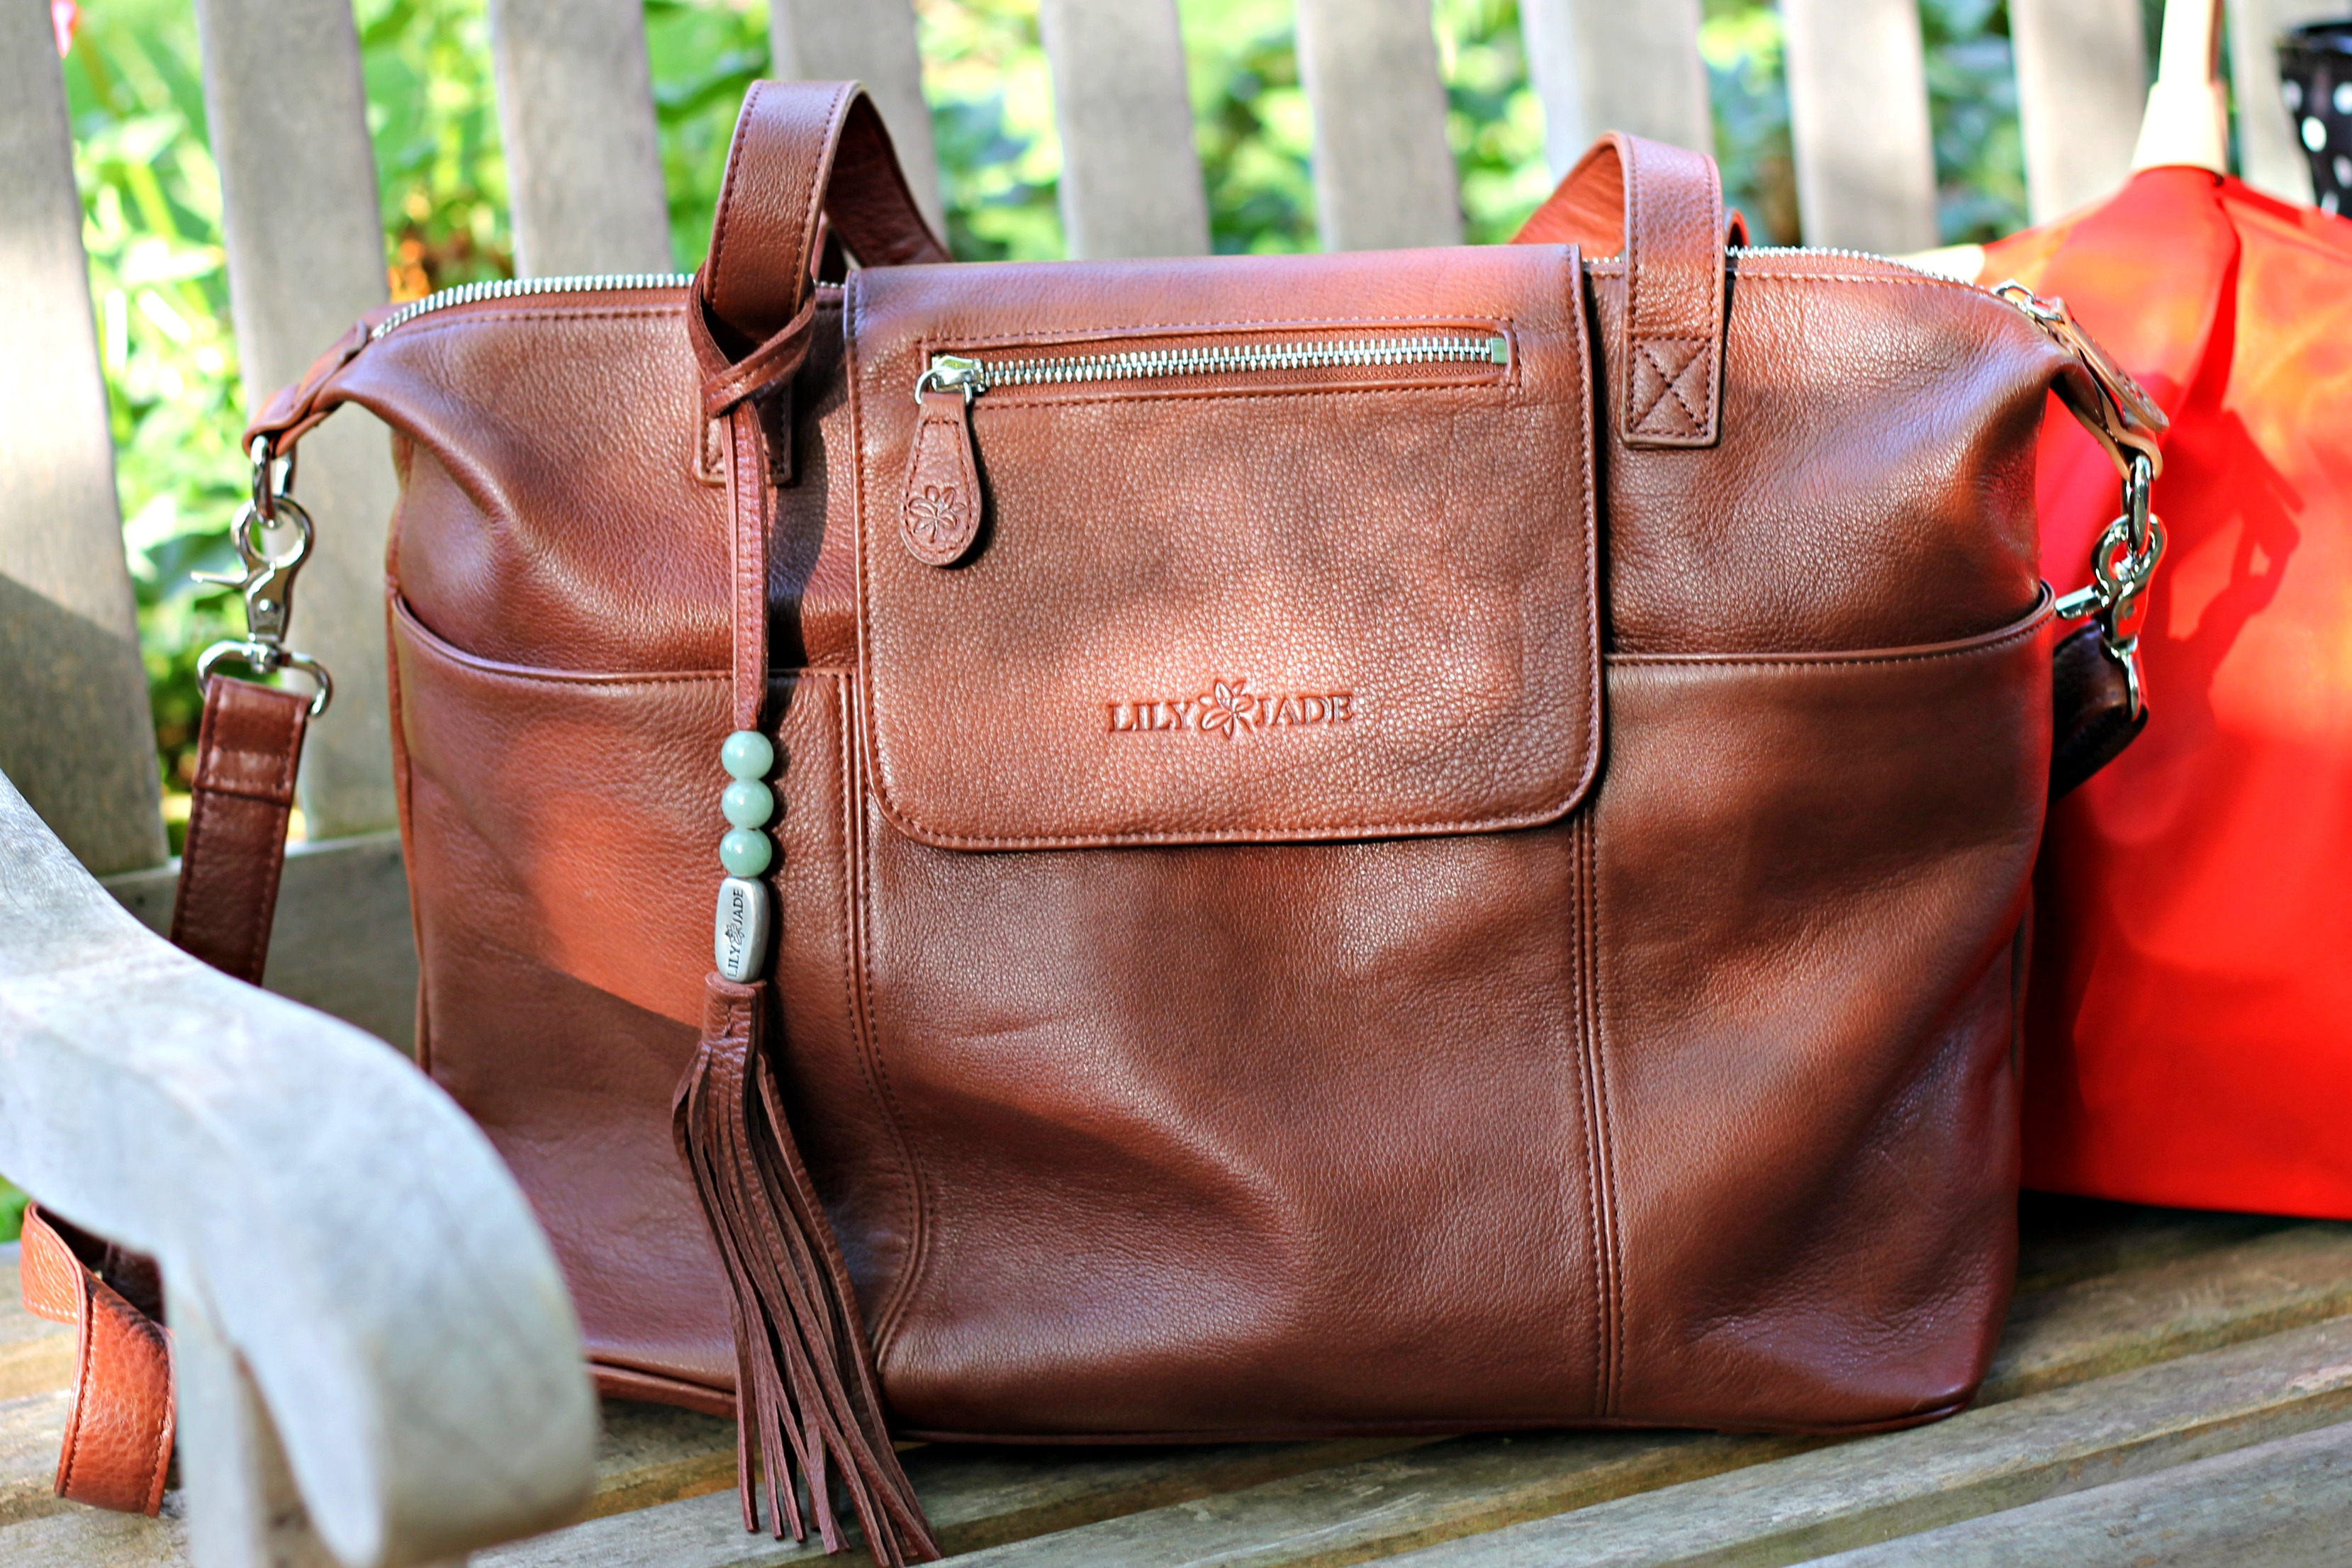 Diaper Bags  Let s talk about them. bcc75c15f4bc8